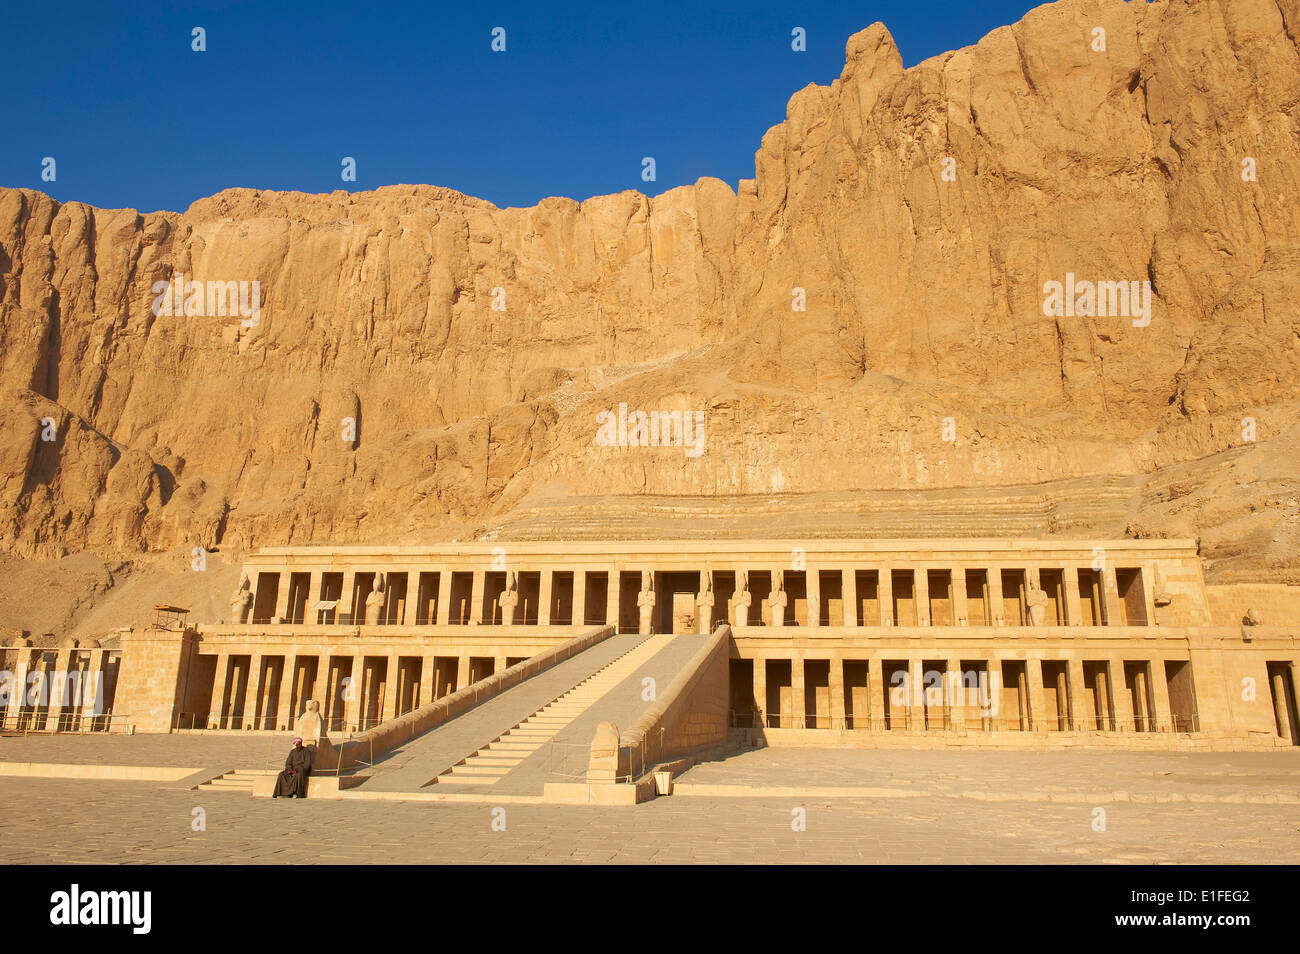 West Bank Of Nile Stock Photos & West Bank Of Nile Stock